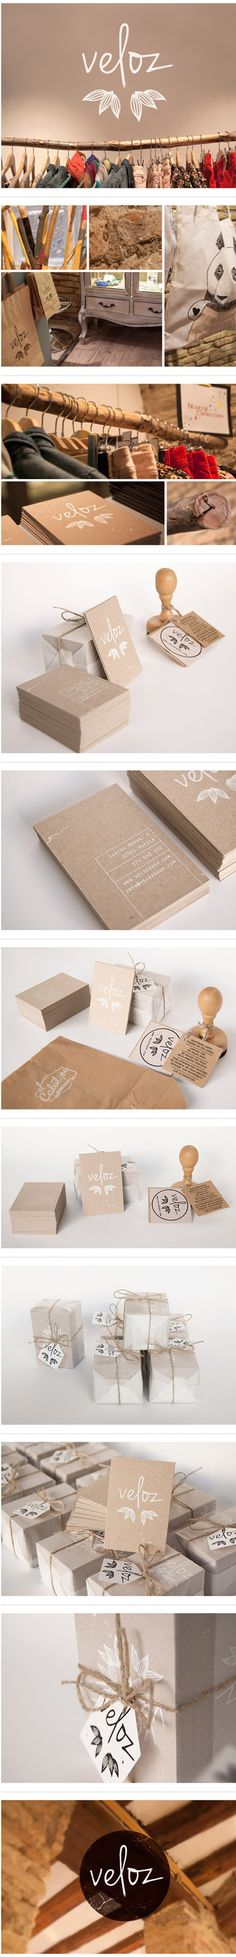 """Created by El Calotipo Printing Studio, Zaragosa Spain.... via """"The Art of Branding"""" - exceptional examples of visual storytelling, compiled by COLORBOX Branding Studio."""